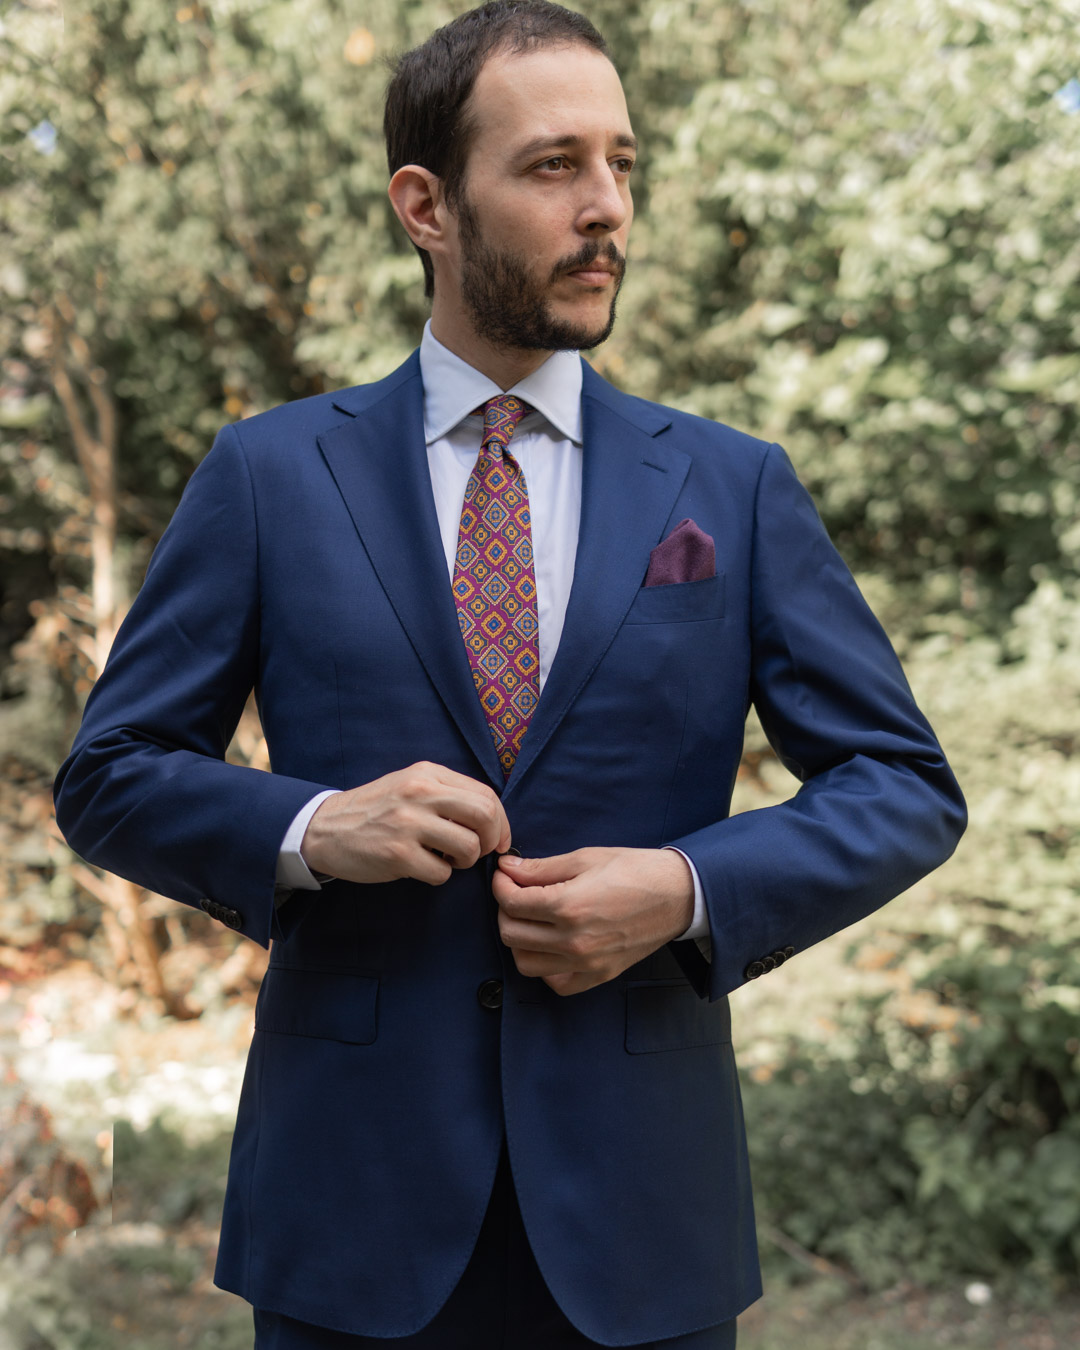 Spier & Mackay Suit and Shirt